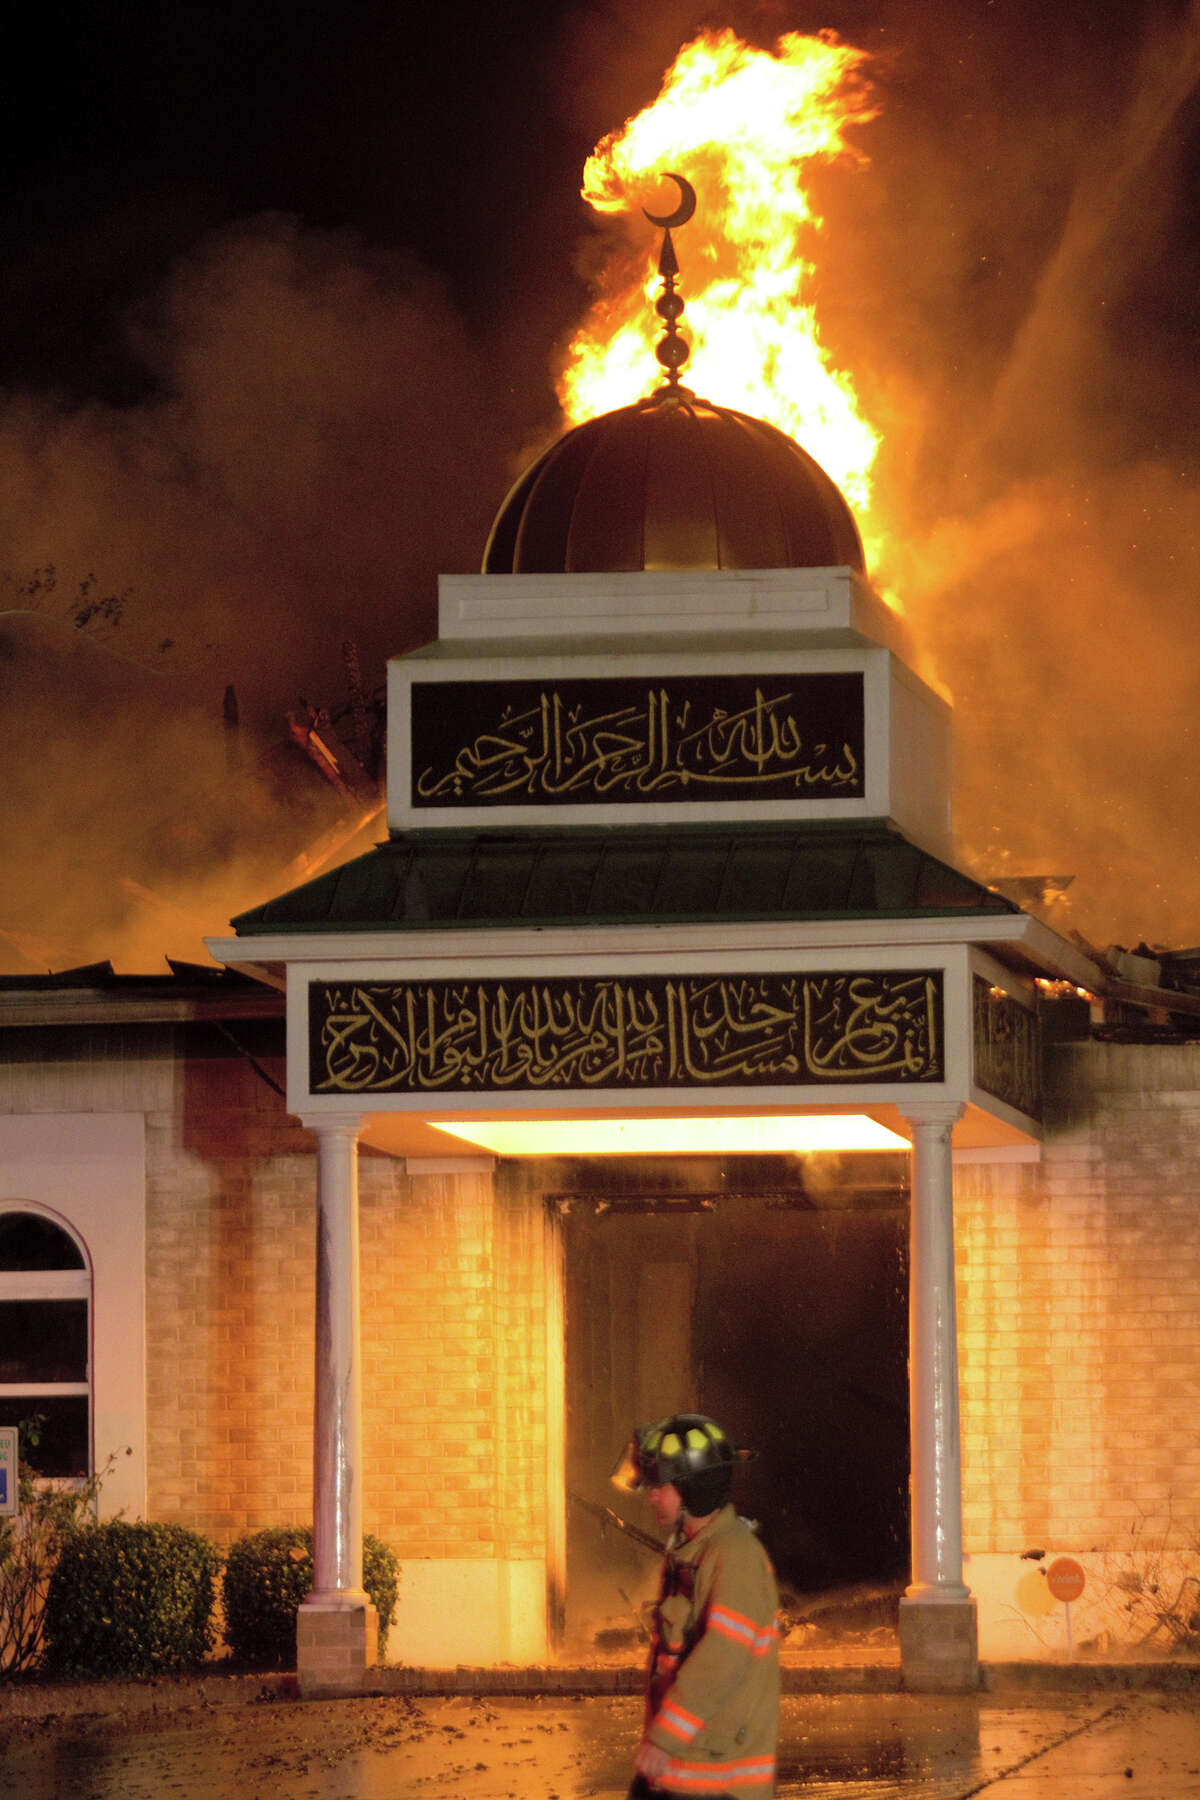 Fire destroyed the Islamic Center of Victoria on Jan. 28. Within a few days, the community raised more than $1 million to rebuild the mosque.